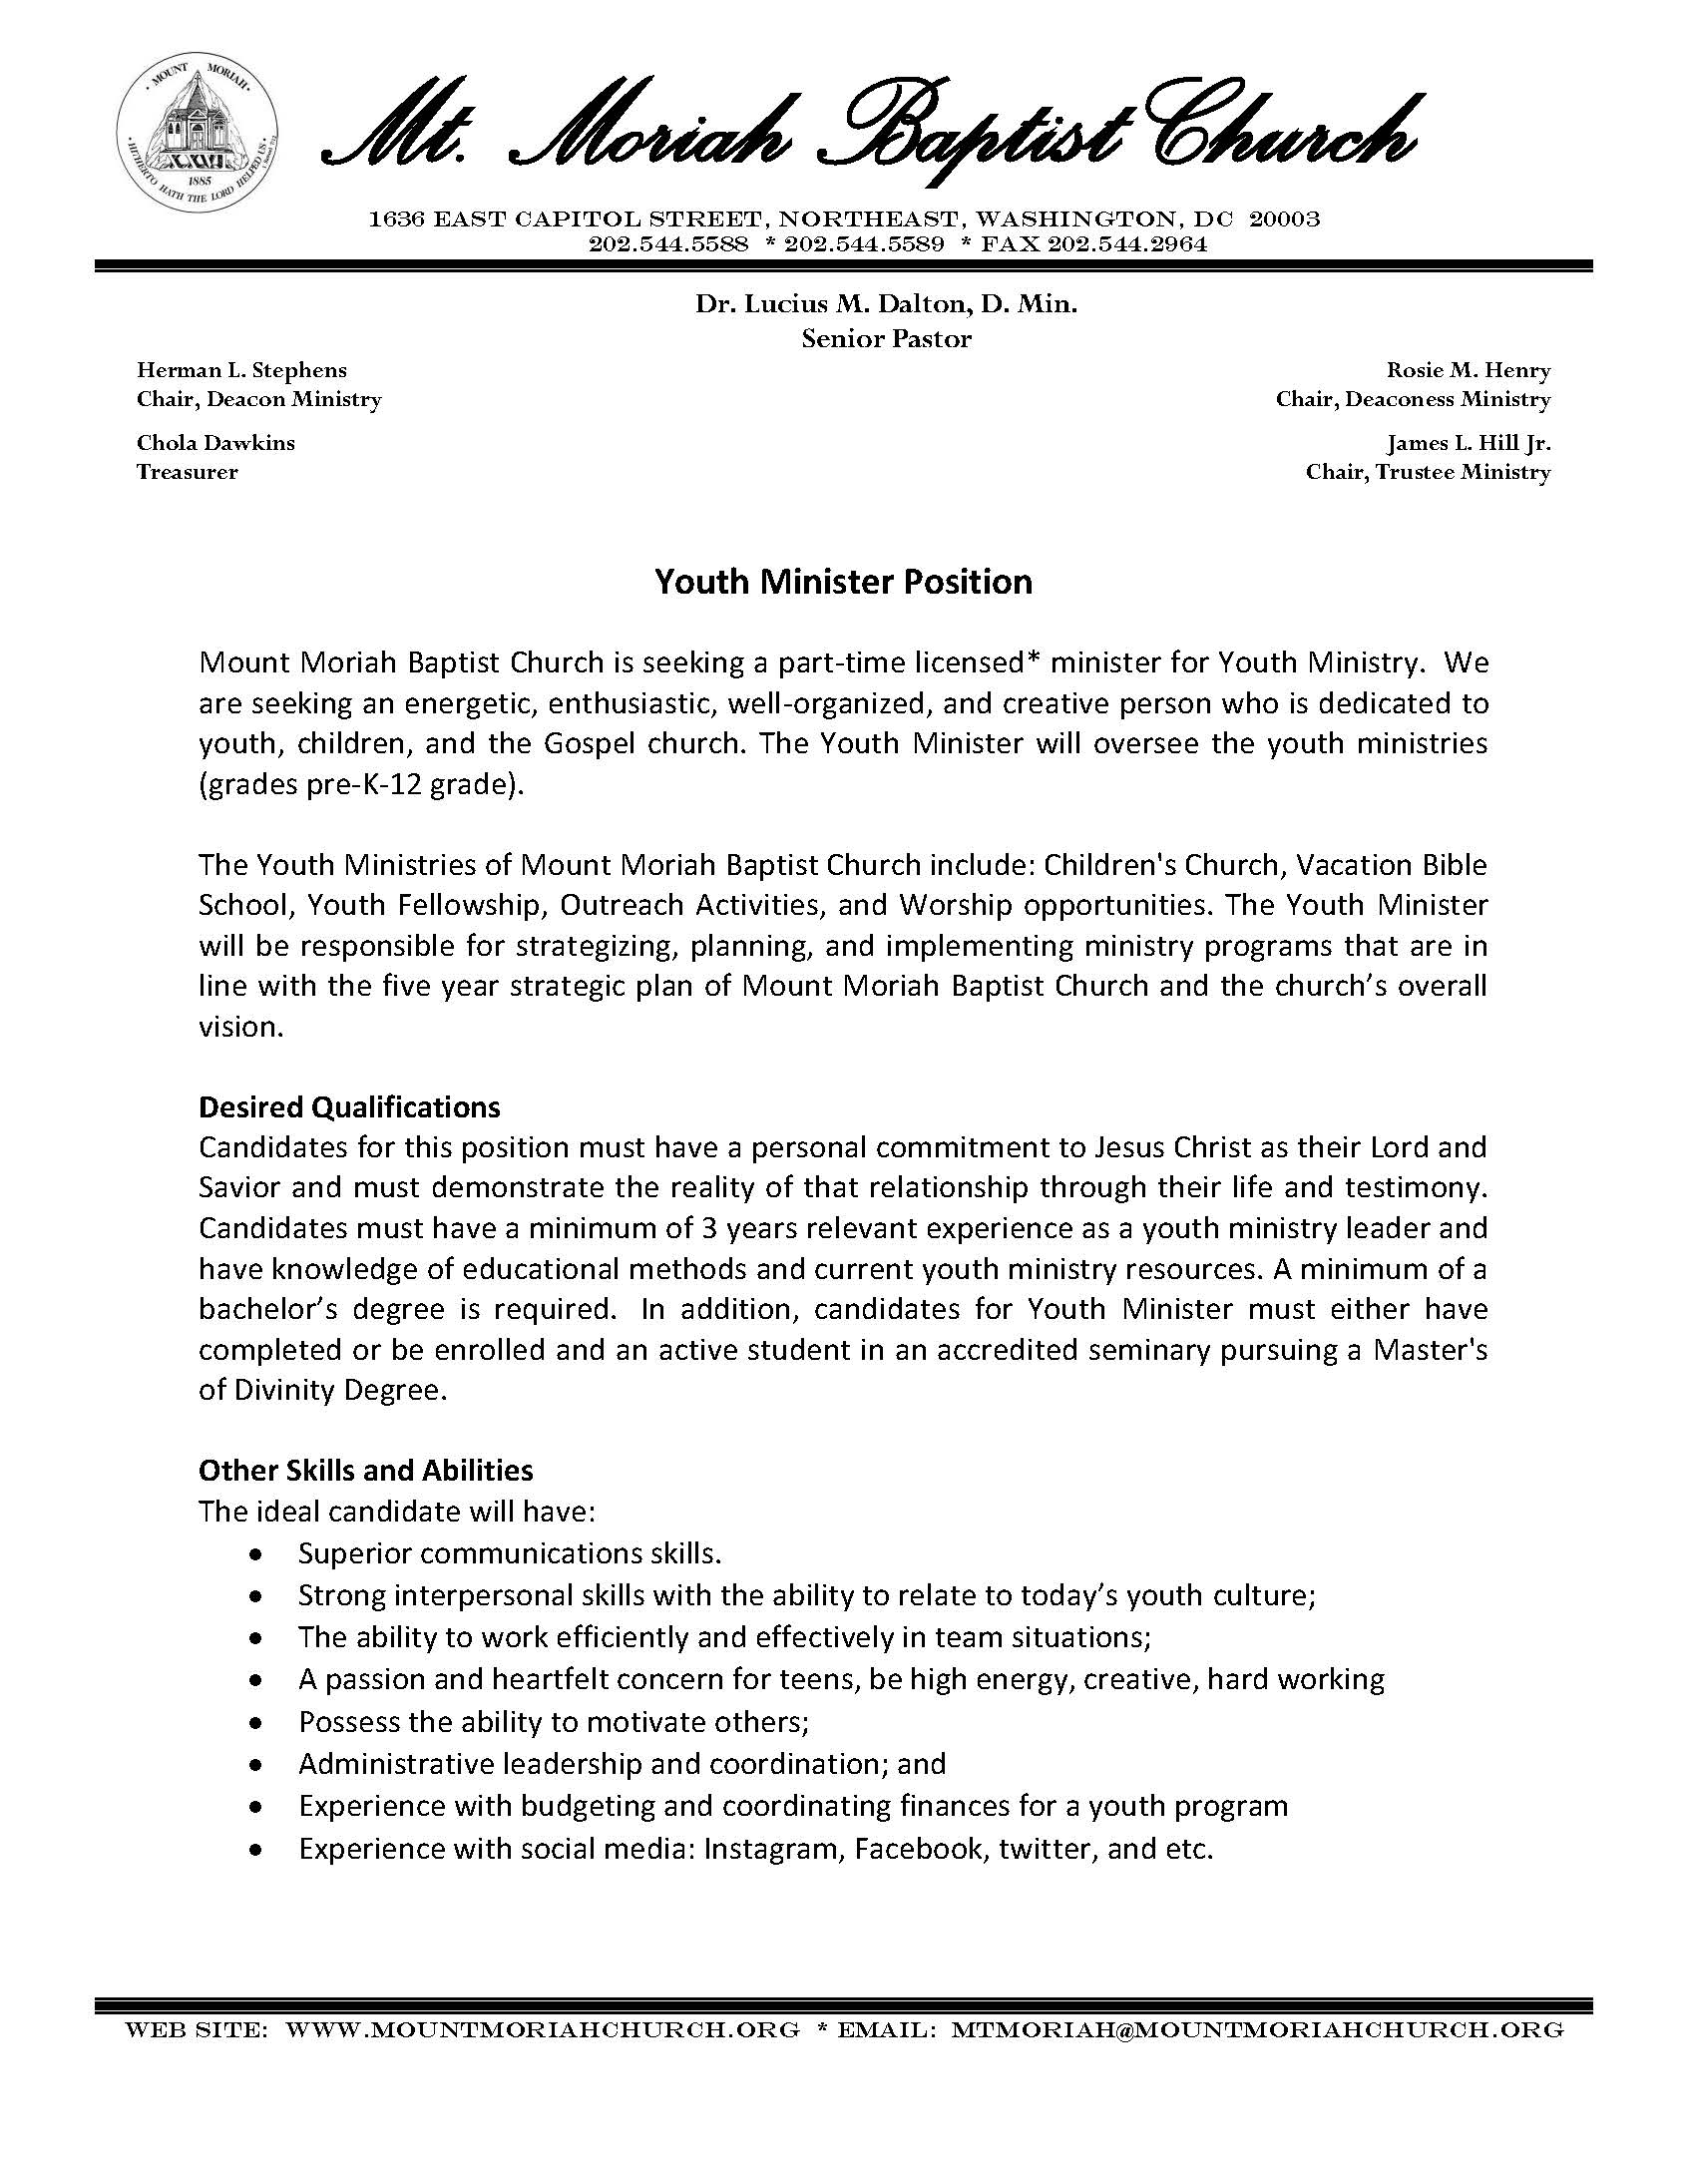 Youth pastor cover letter timiznceptzmusic youth pastor cover letter altavistaventures Images